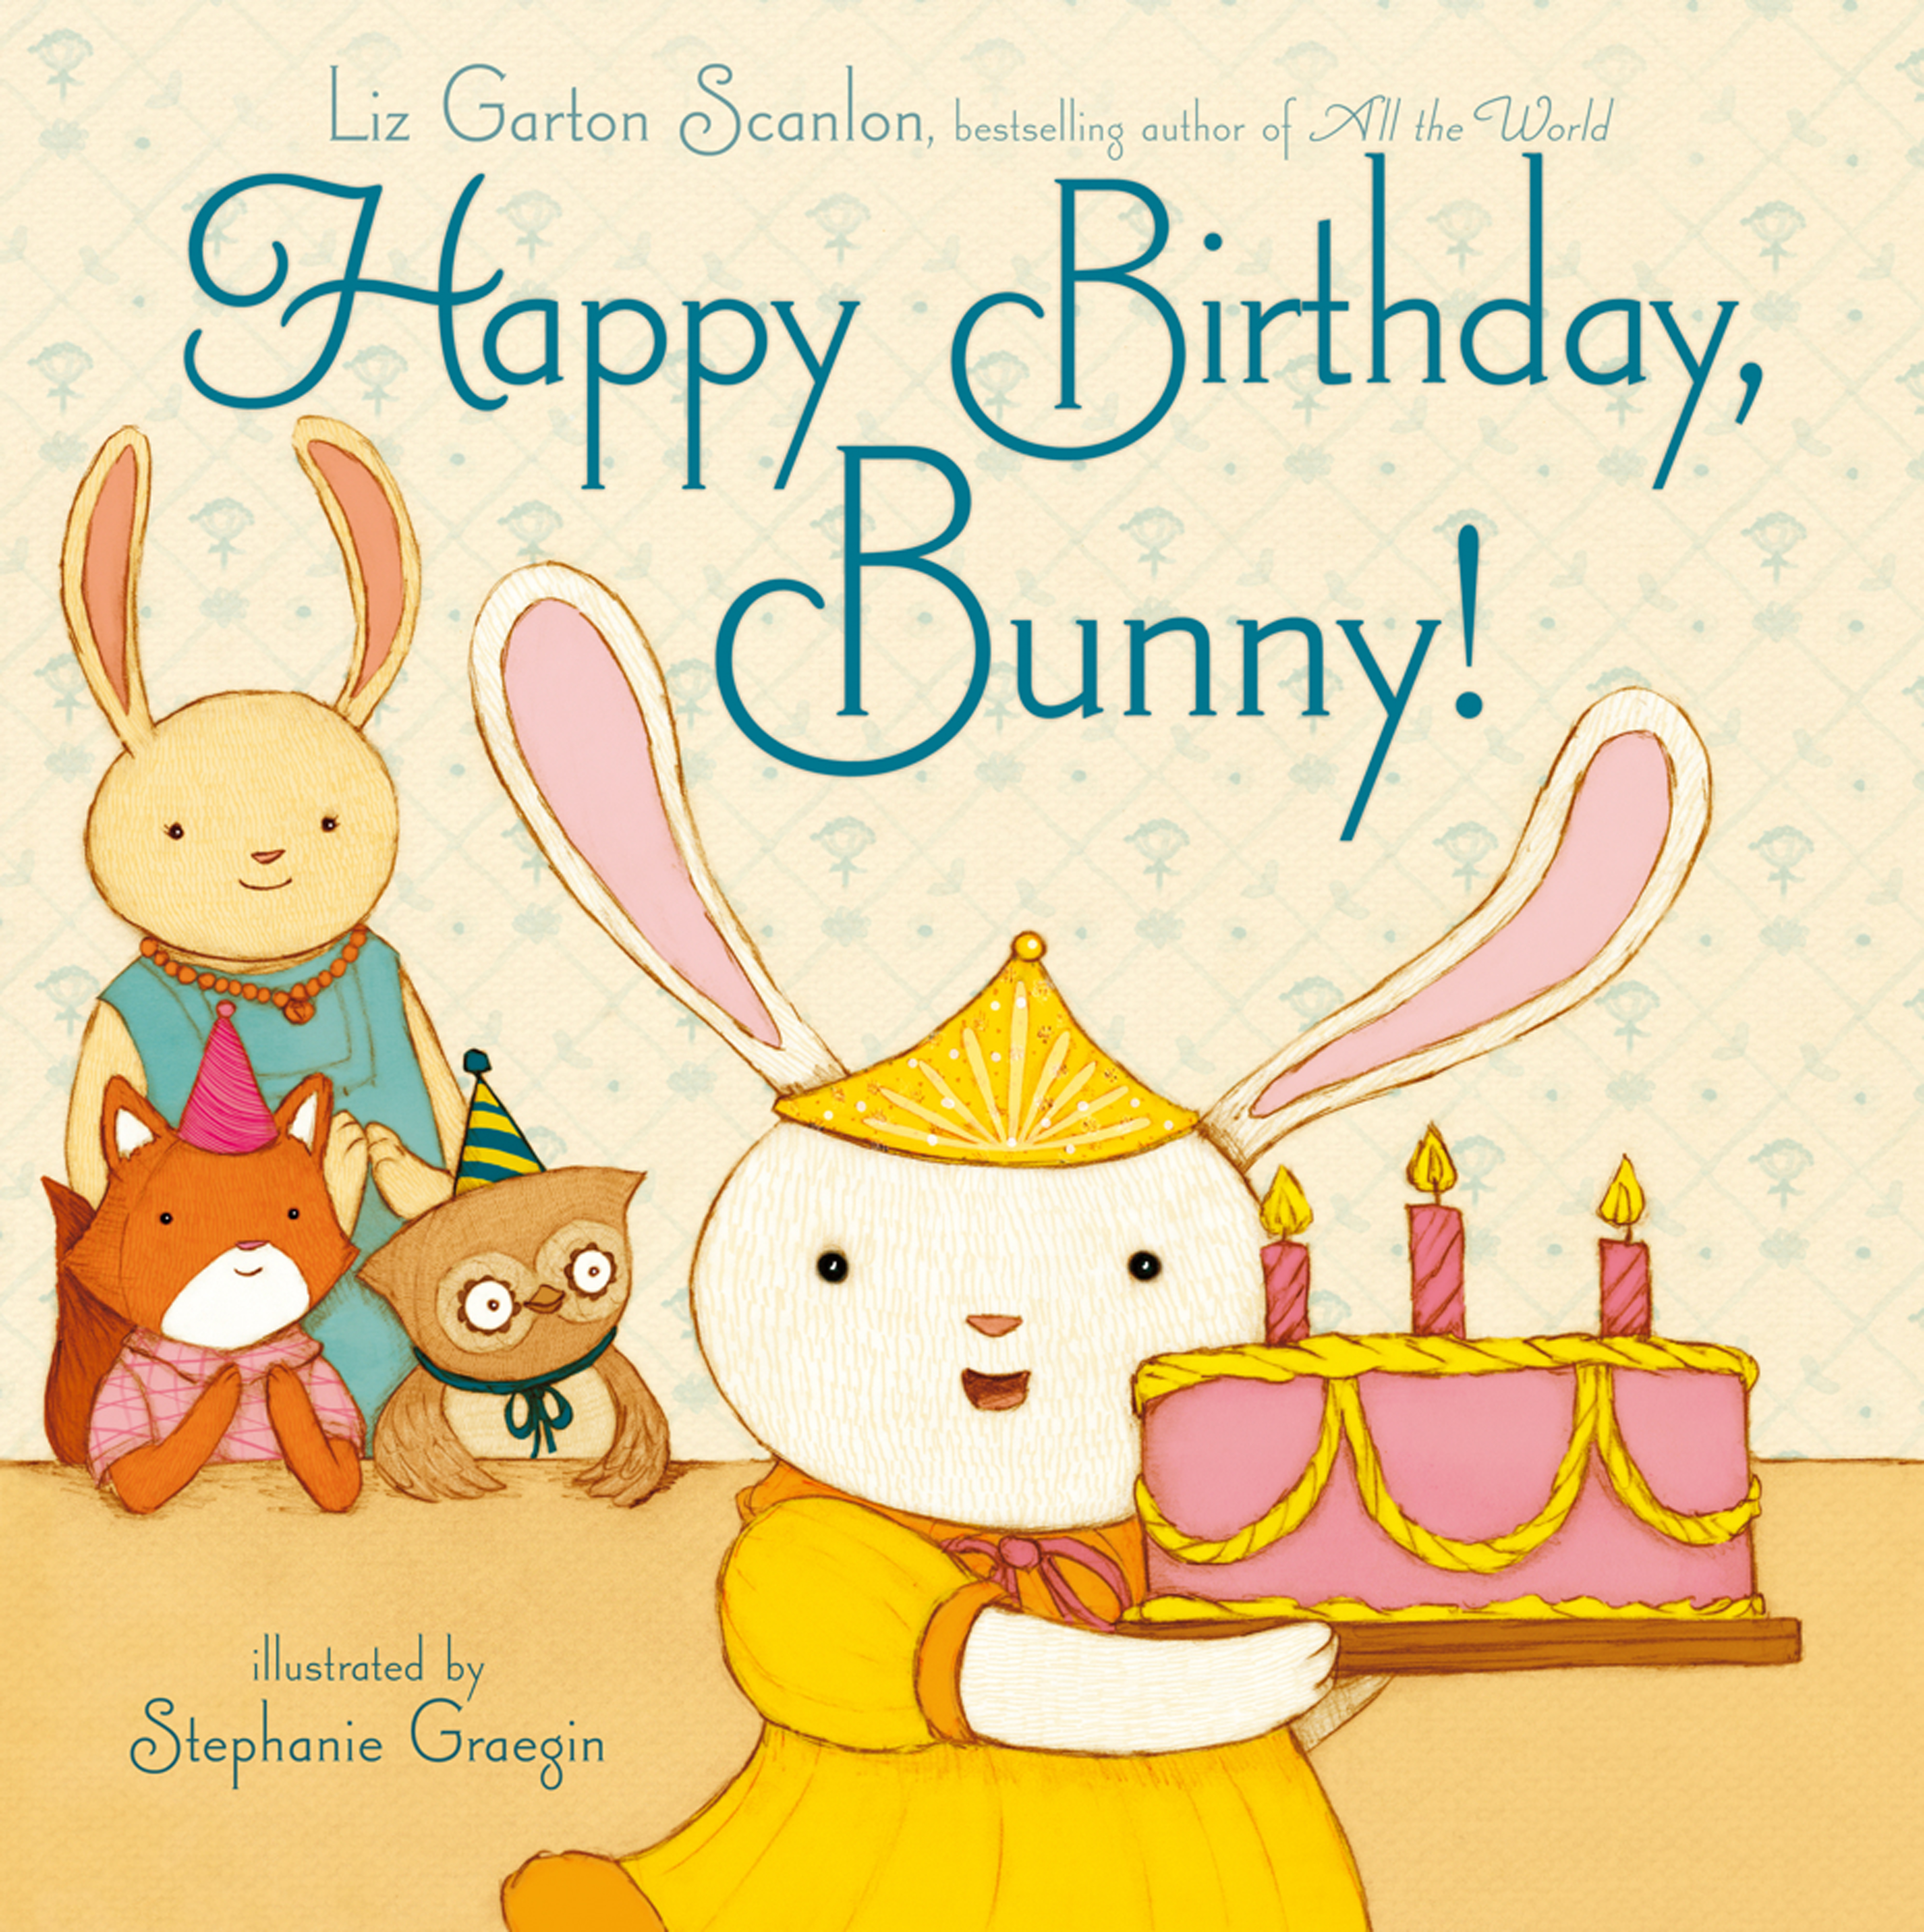 Happy Birthday, Bunny! By: Liz Garton Scanlon,Stephanie Graegin